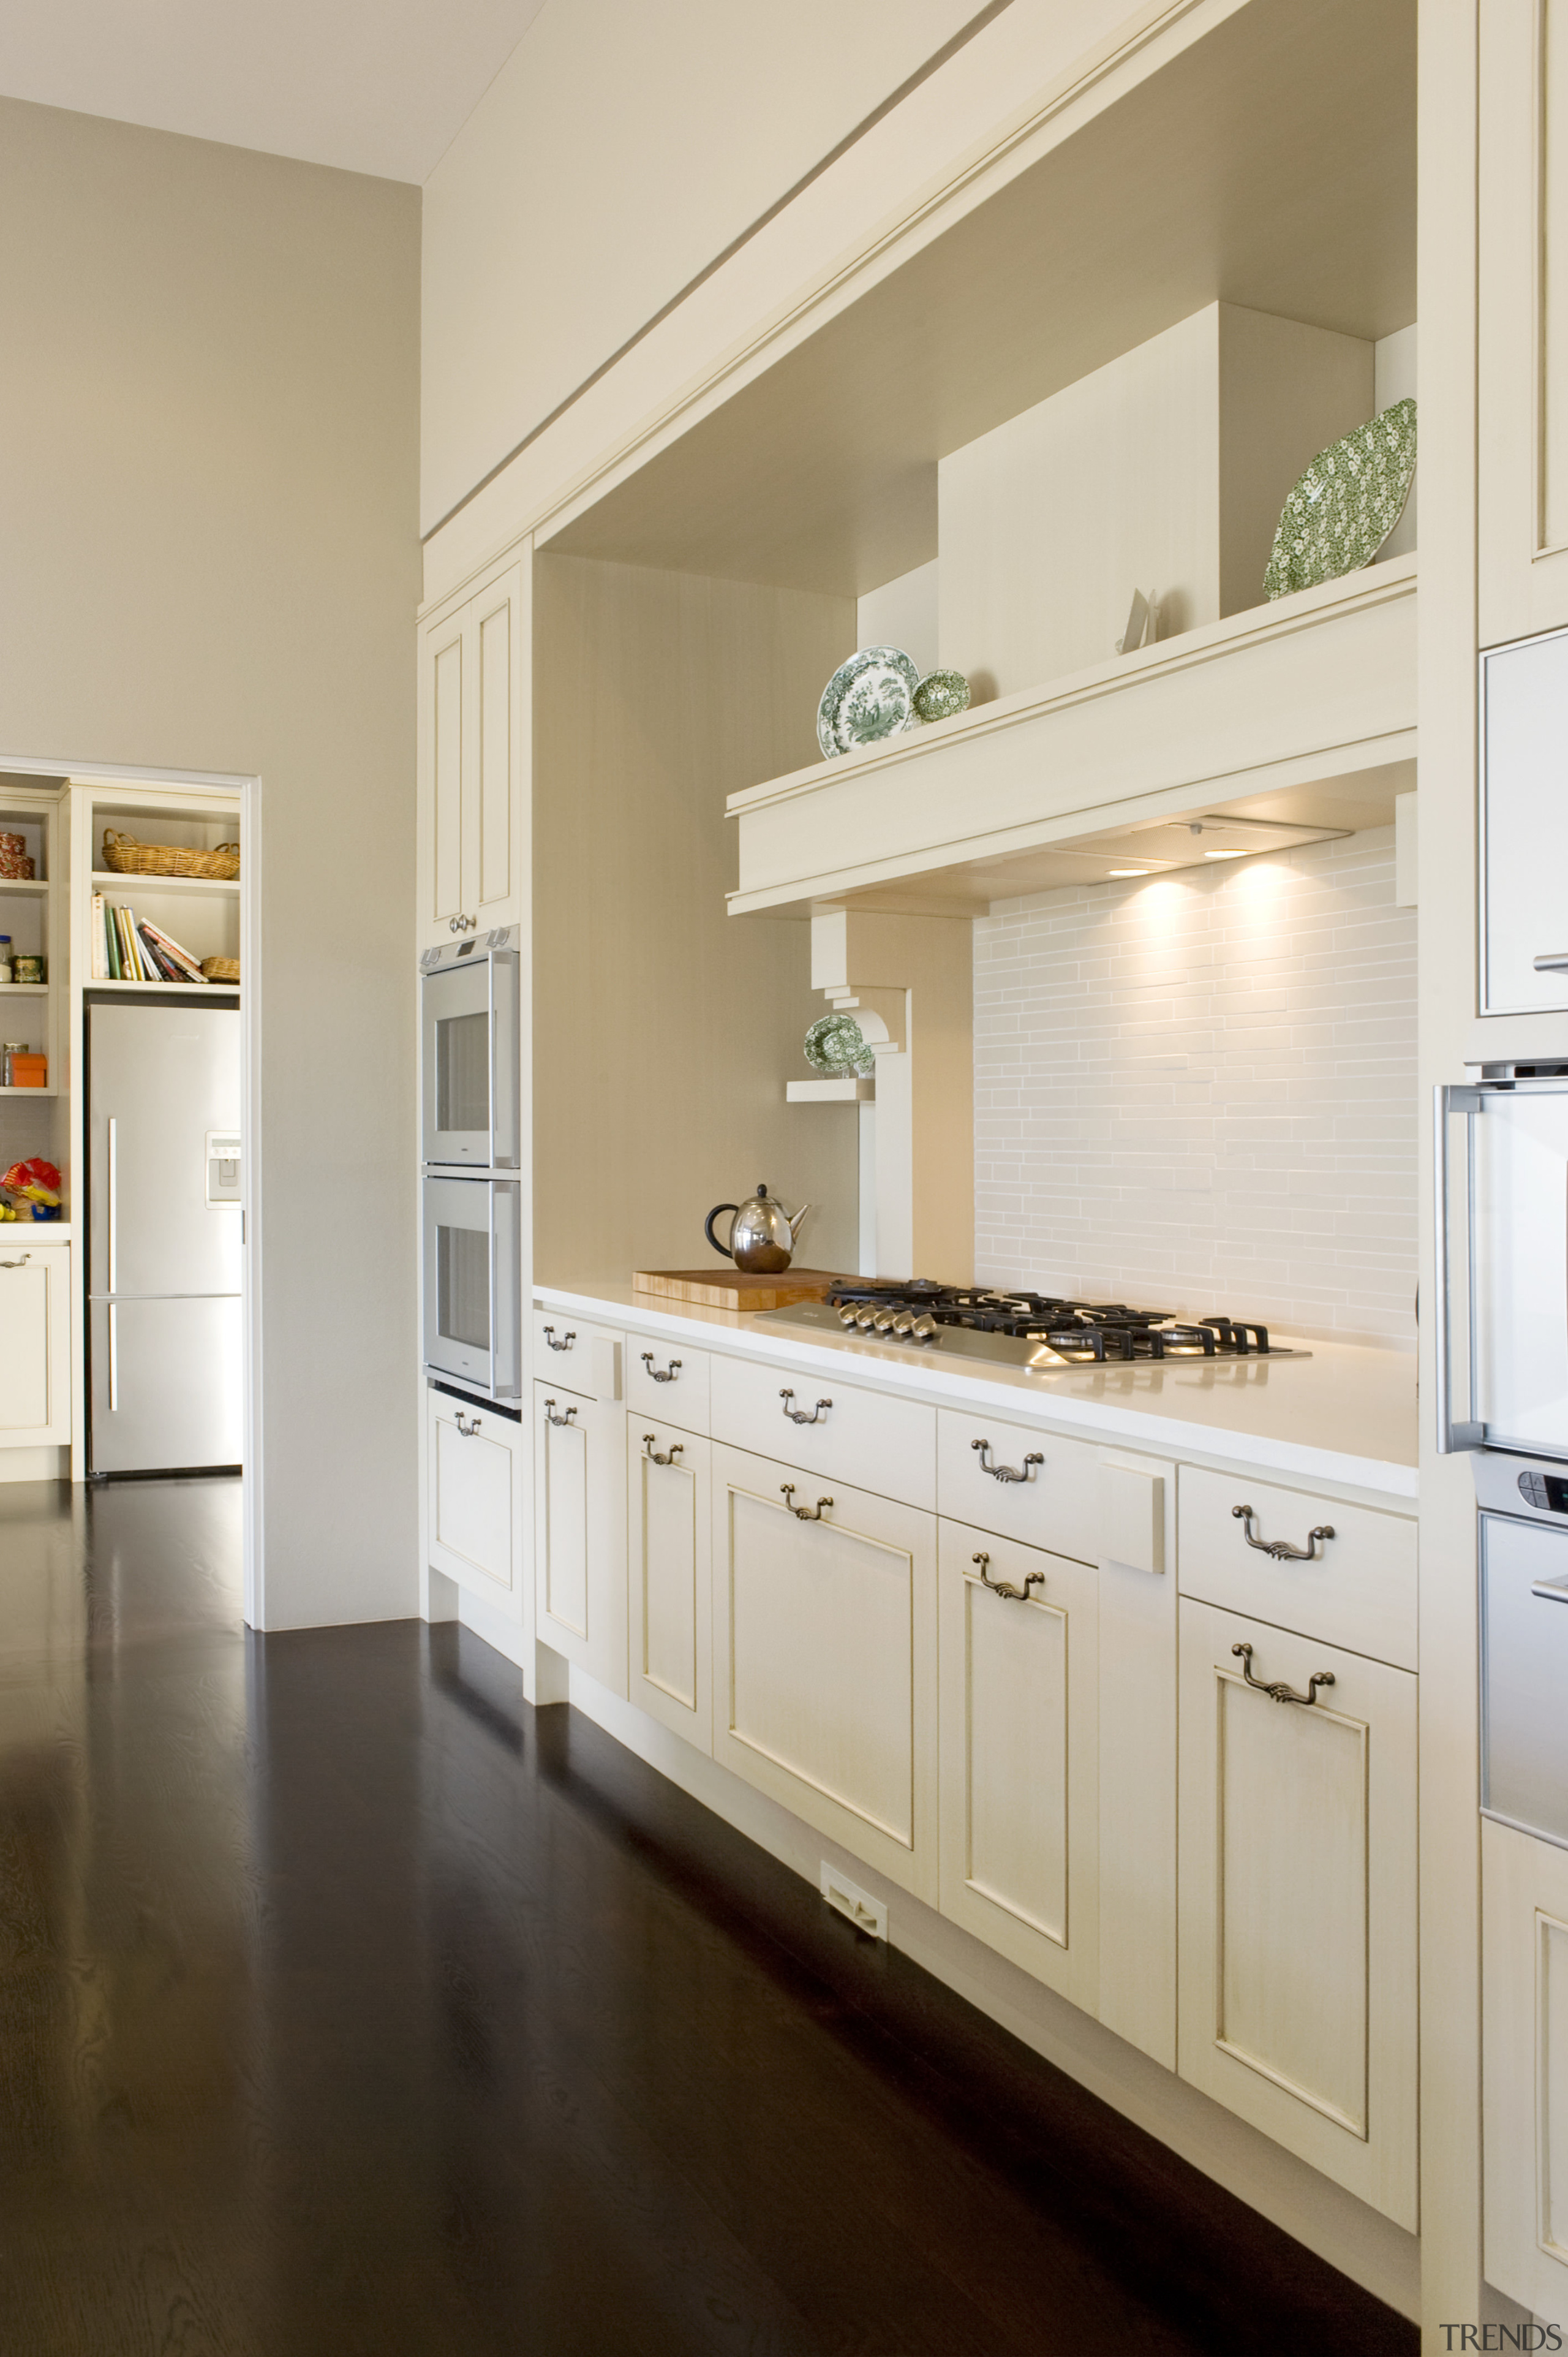 Image of the kitchen designed by Fyfe kitchens cabinetry, countertop, cuisine classique, floor, home, home appliance, interior design, kitchen, room, gray